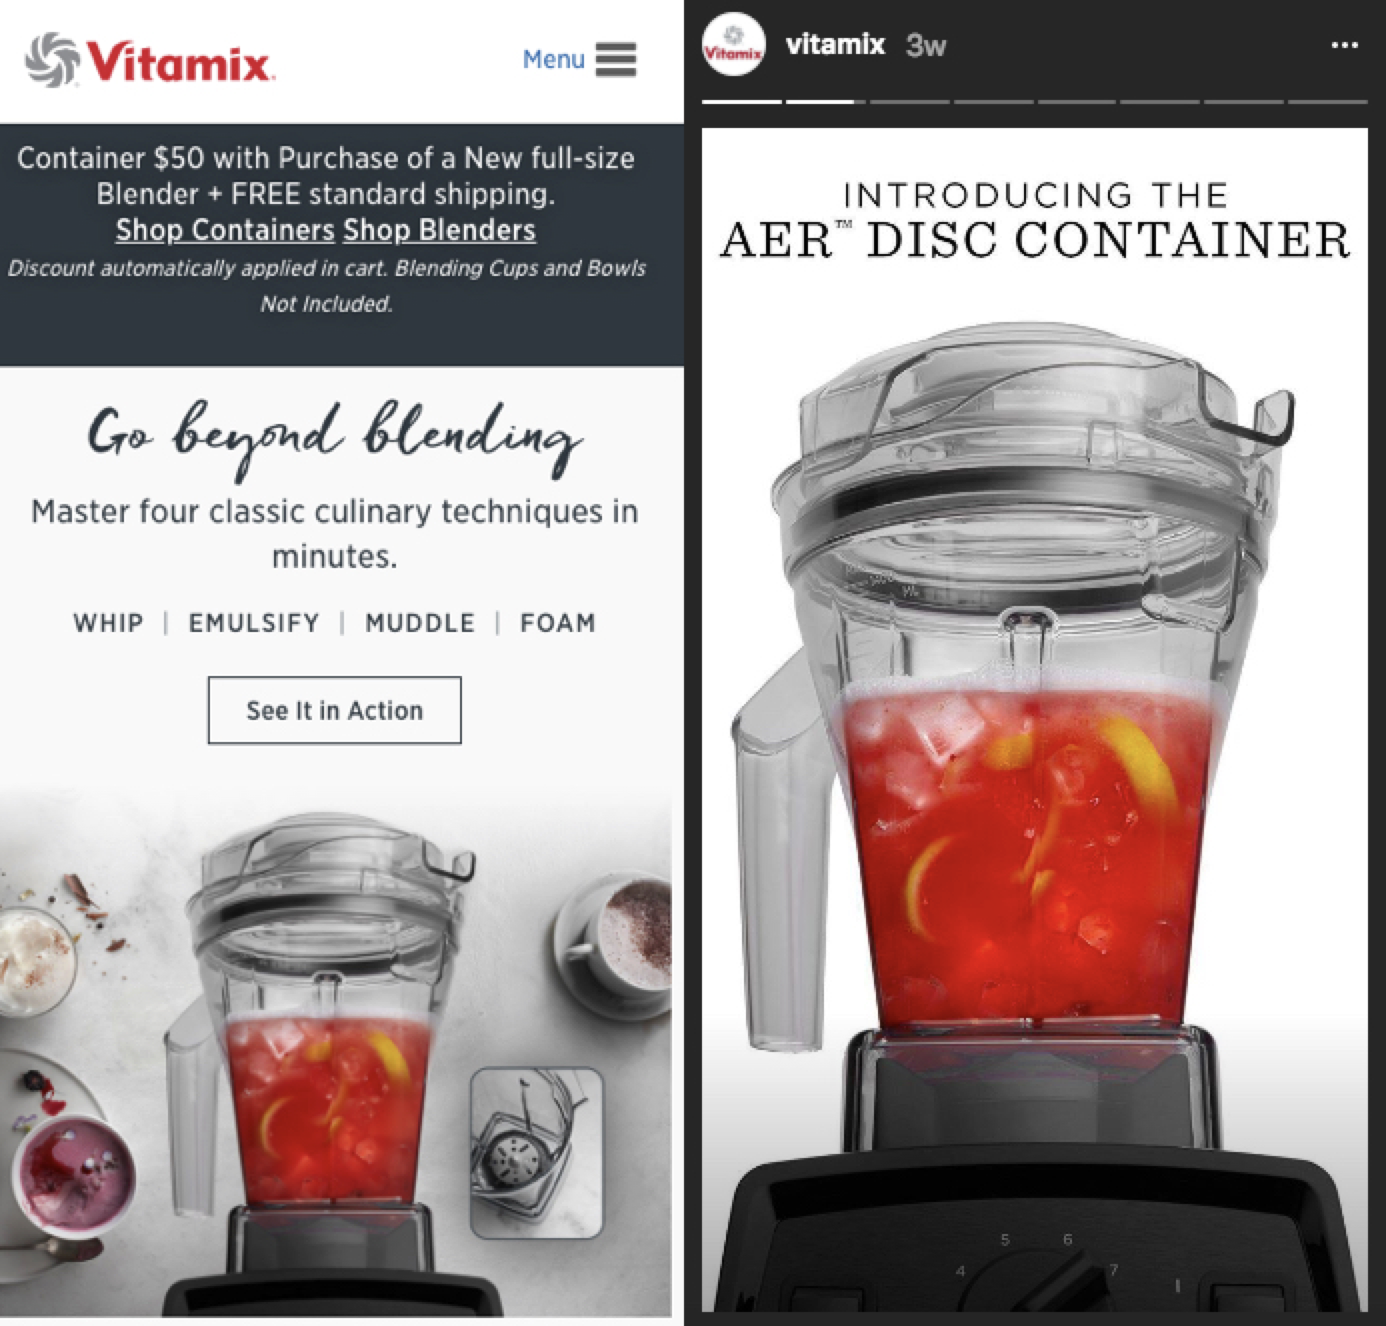 Vitamix Instagram post showing off new product